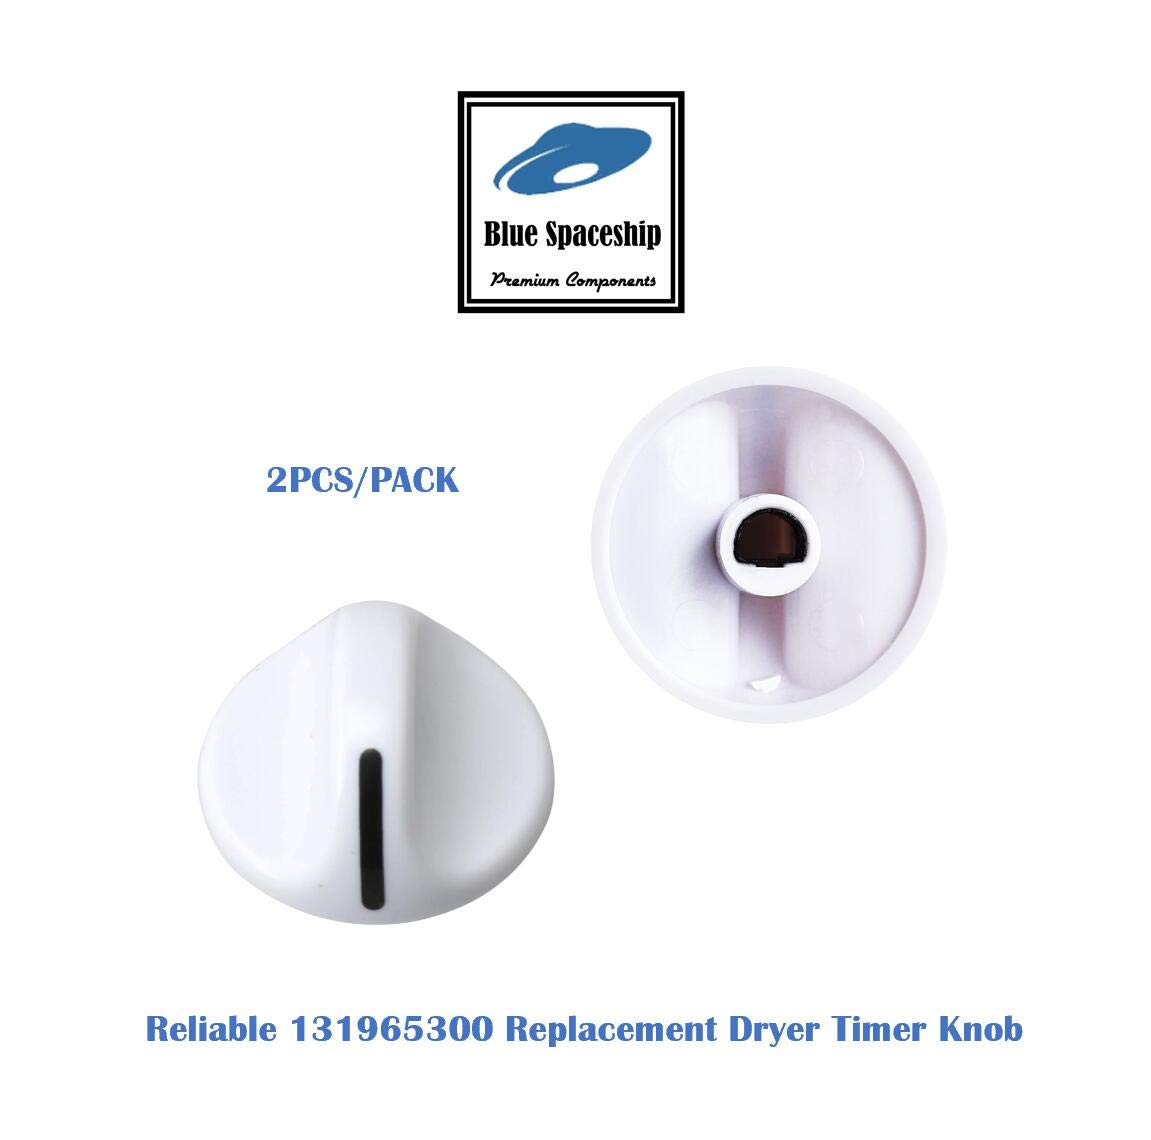 2PCS Reliable 131965300 Dryer Timer Knob. Replacement Part Fits for Frigidaire Electrolux Dryers and Replaces 131965300 131666604, 820923, AH419092, EA419092, PS419092, LP10194